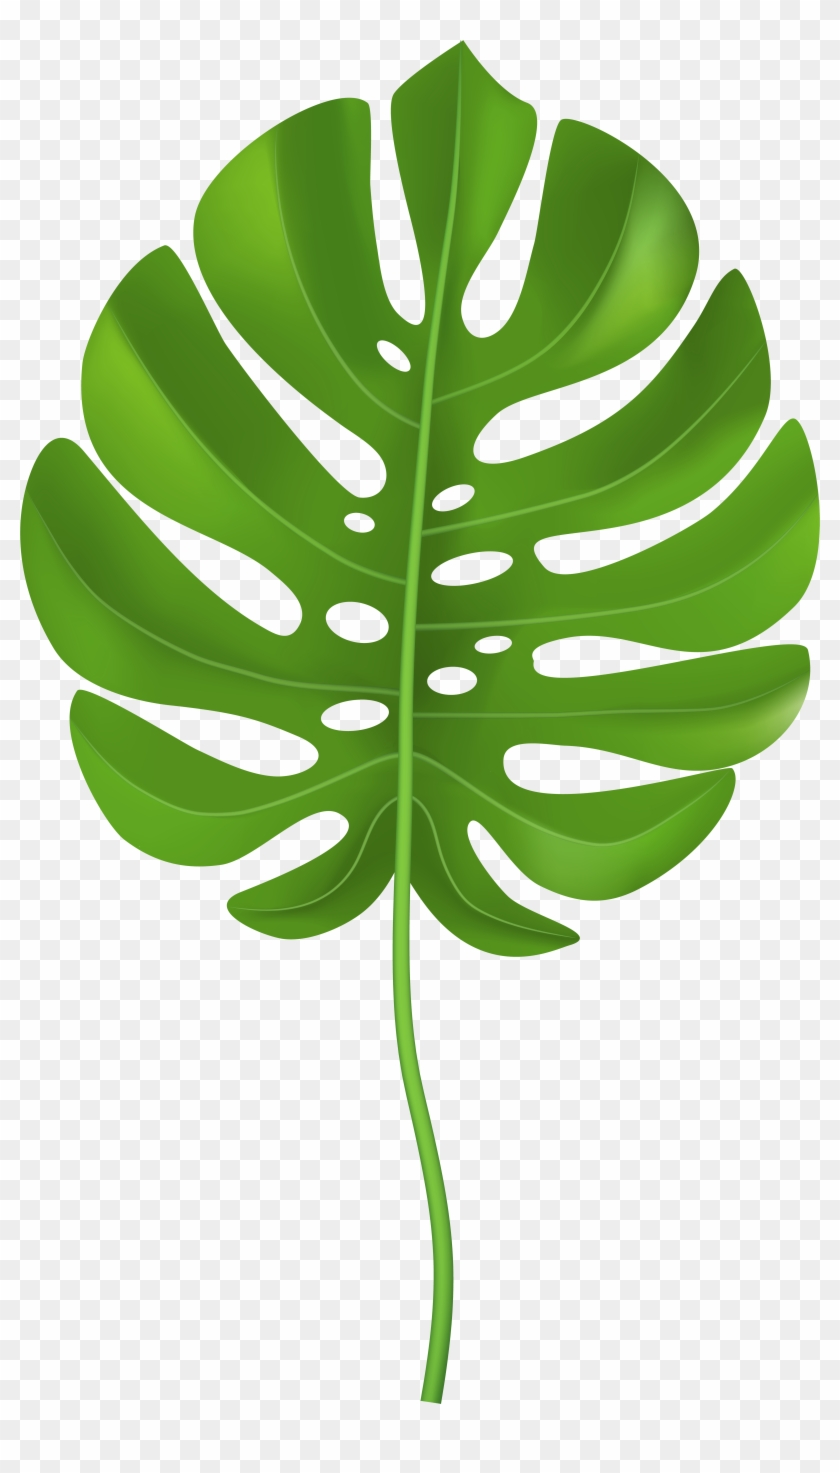 Tropical Palm Leaf Transparent Png Clip Art Image Tropical Leaf Clip Art Png Free Transparent Png Clipart Images Download Choose from over a million free vectors, clipart graphics, vector art images, design templates, and illustrations created by artists worldwide! tropical palm leaf transparent png clip